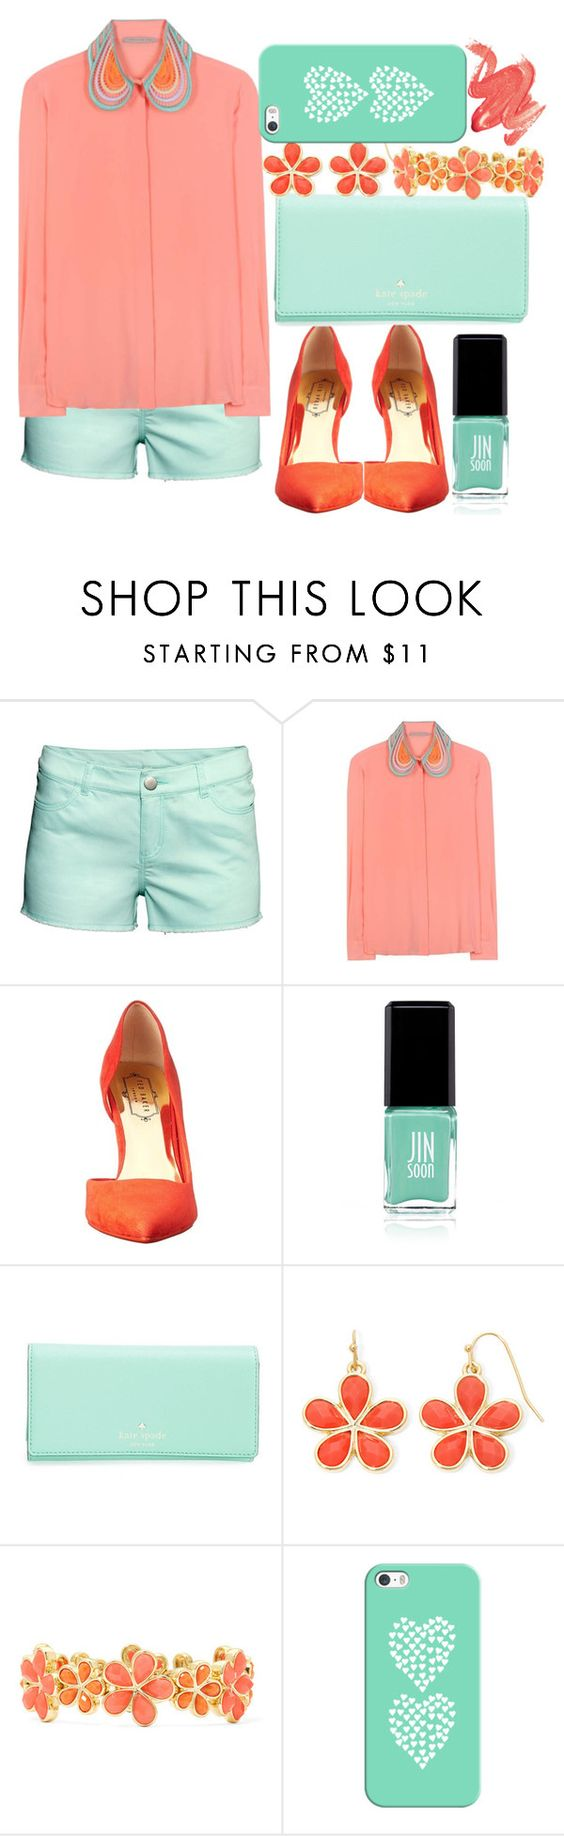 """""""a walk with the spring"""" by giuliamerluzzi ❤ liked on Polyvore featuring H&M, Christopher Kane, Ted Baker, Jin Soon, Kate Spade, Liz Claiborne, Casetify, women's clothing, women and female"""